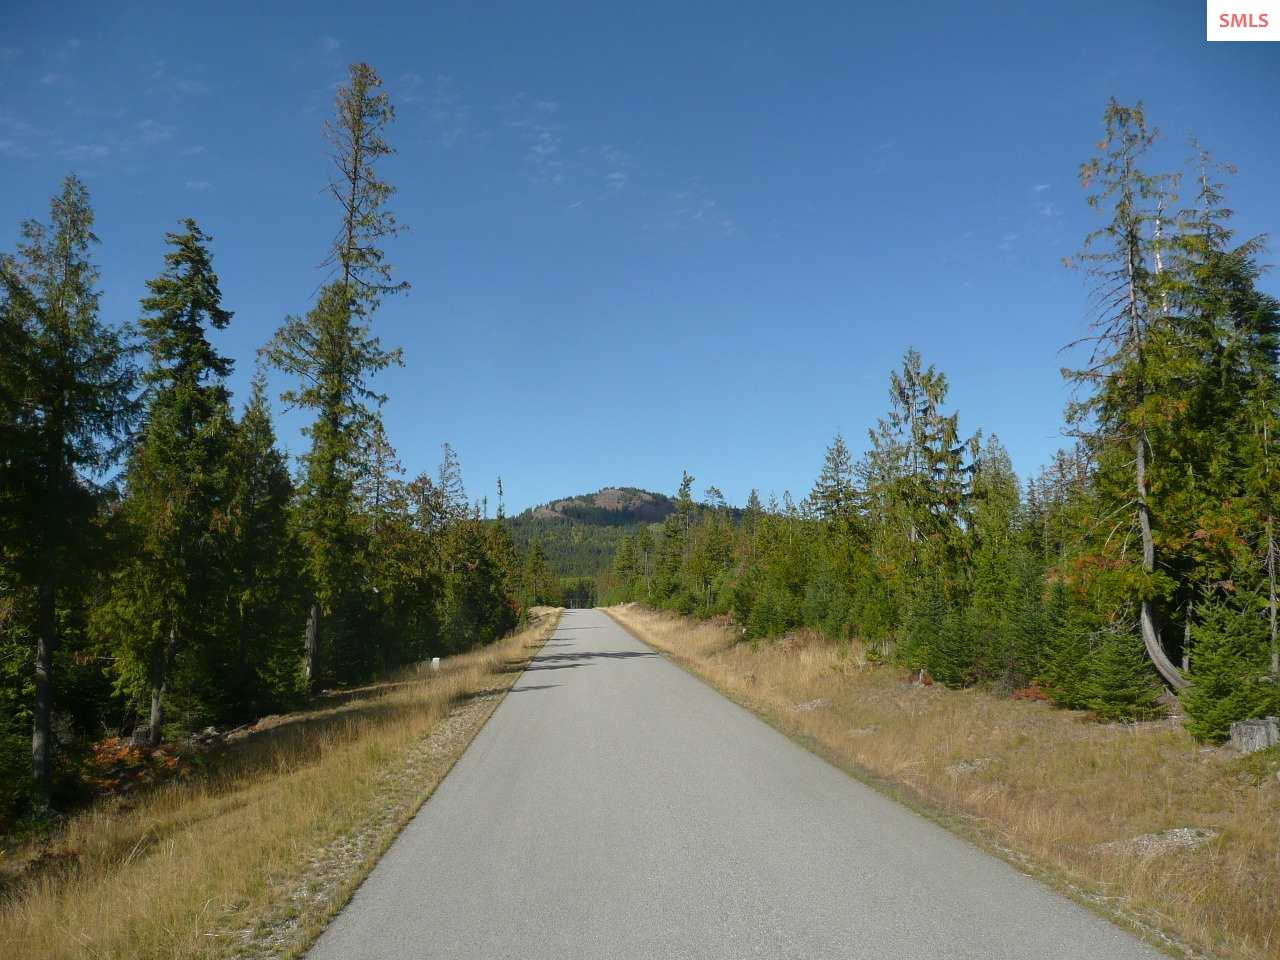 Unique Opportunity ! 36 Acre parcel located on a paved road with multiple uses possible. Perfect for an Estate or Family Compound. In addition, has tentative Plat approved for a 6 lot subdivision. Mountain Views all around and wildlife in abundance. Located at the base of Grouse Mountain,  just 4 miles from Hwy 95 or the Boat Launch at Garfield Bay and just 8 miles to Sandpoint.